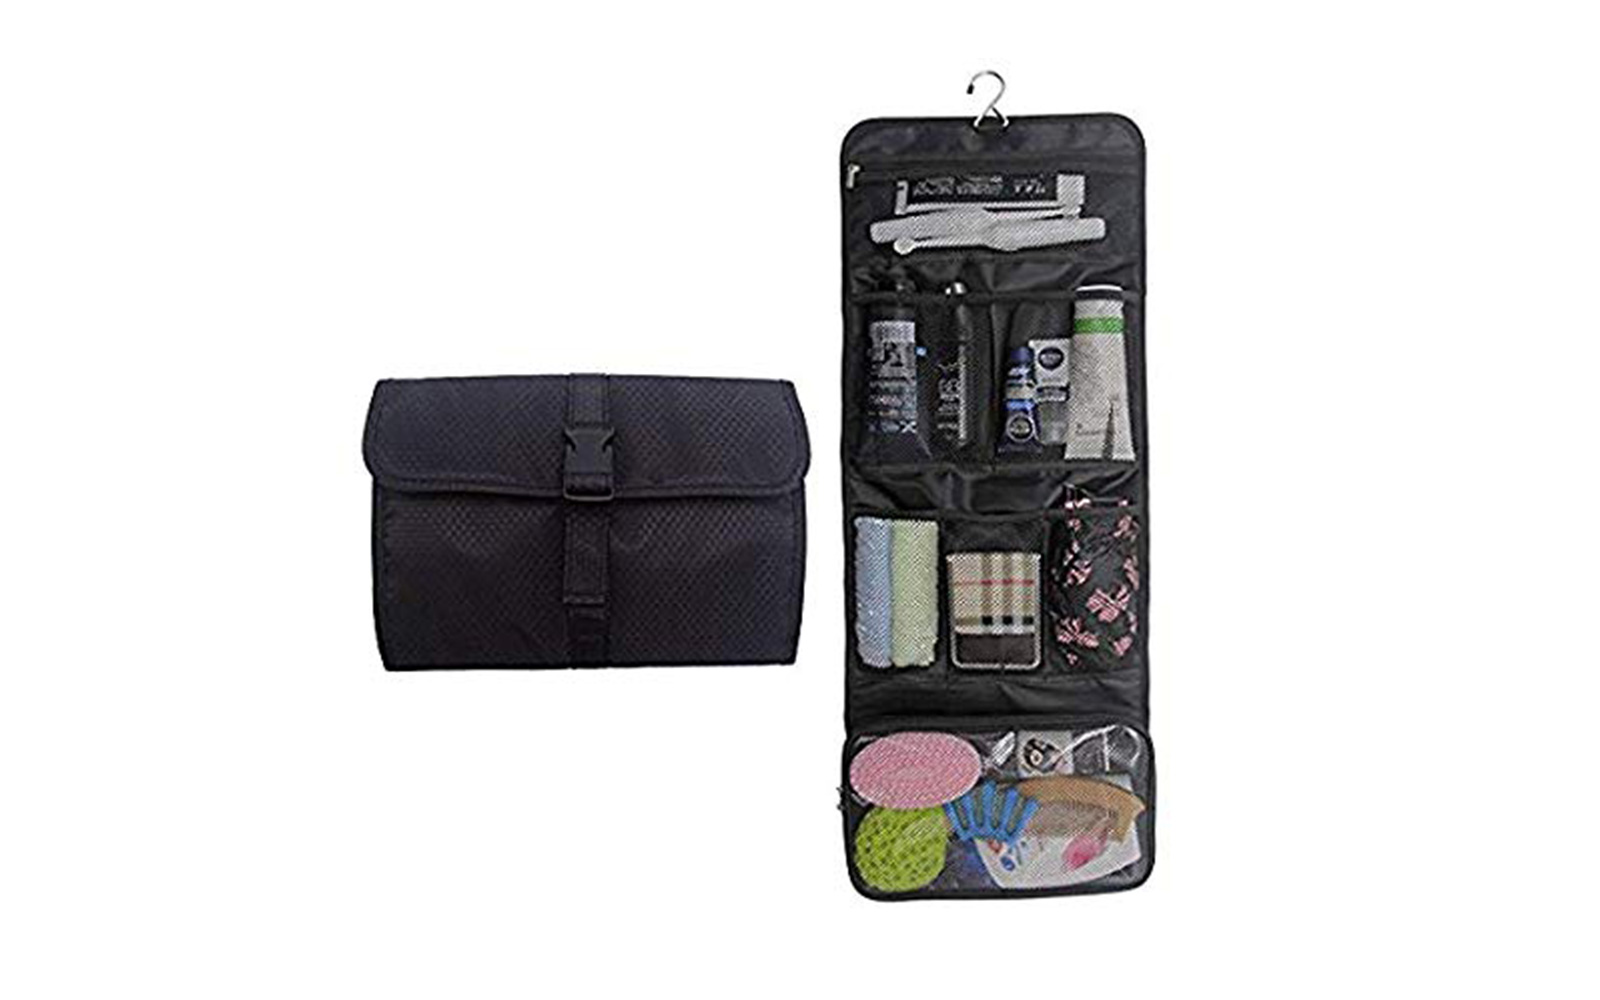 34abee6ef15f The Best Toiletry Bags